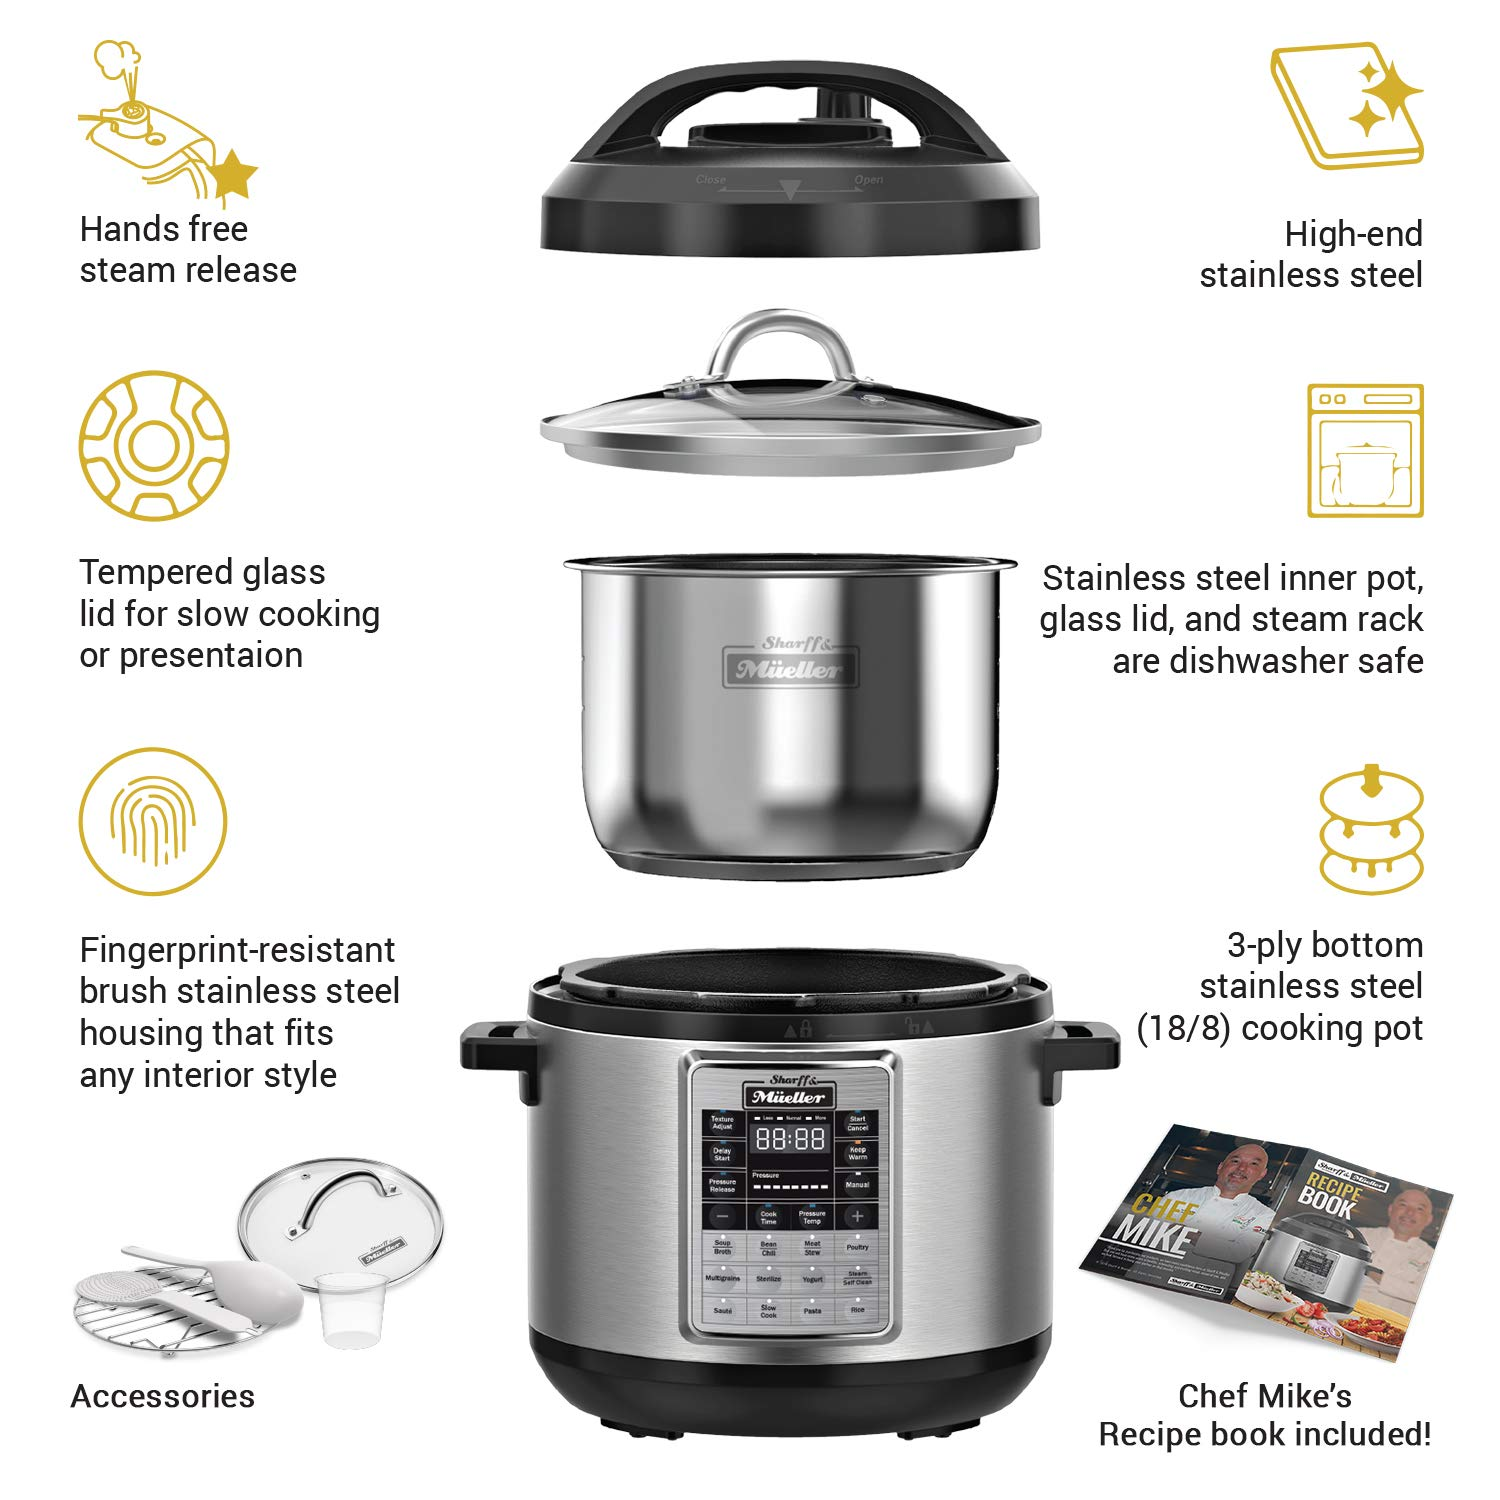 Electric Pressure Cooker 6 Quart Stainless Steel 12 in 1 Programmable Multipot Cooker Duopro RecipeBook Included by Sharff and Mueller by Sharff & Müeller (Image #2)